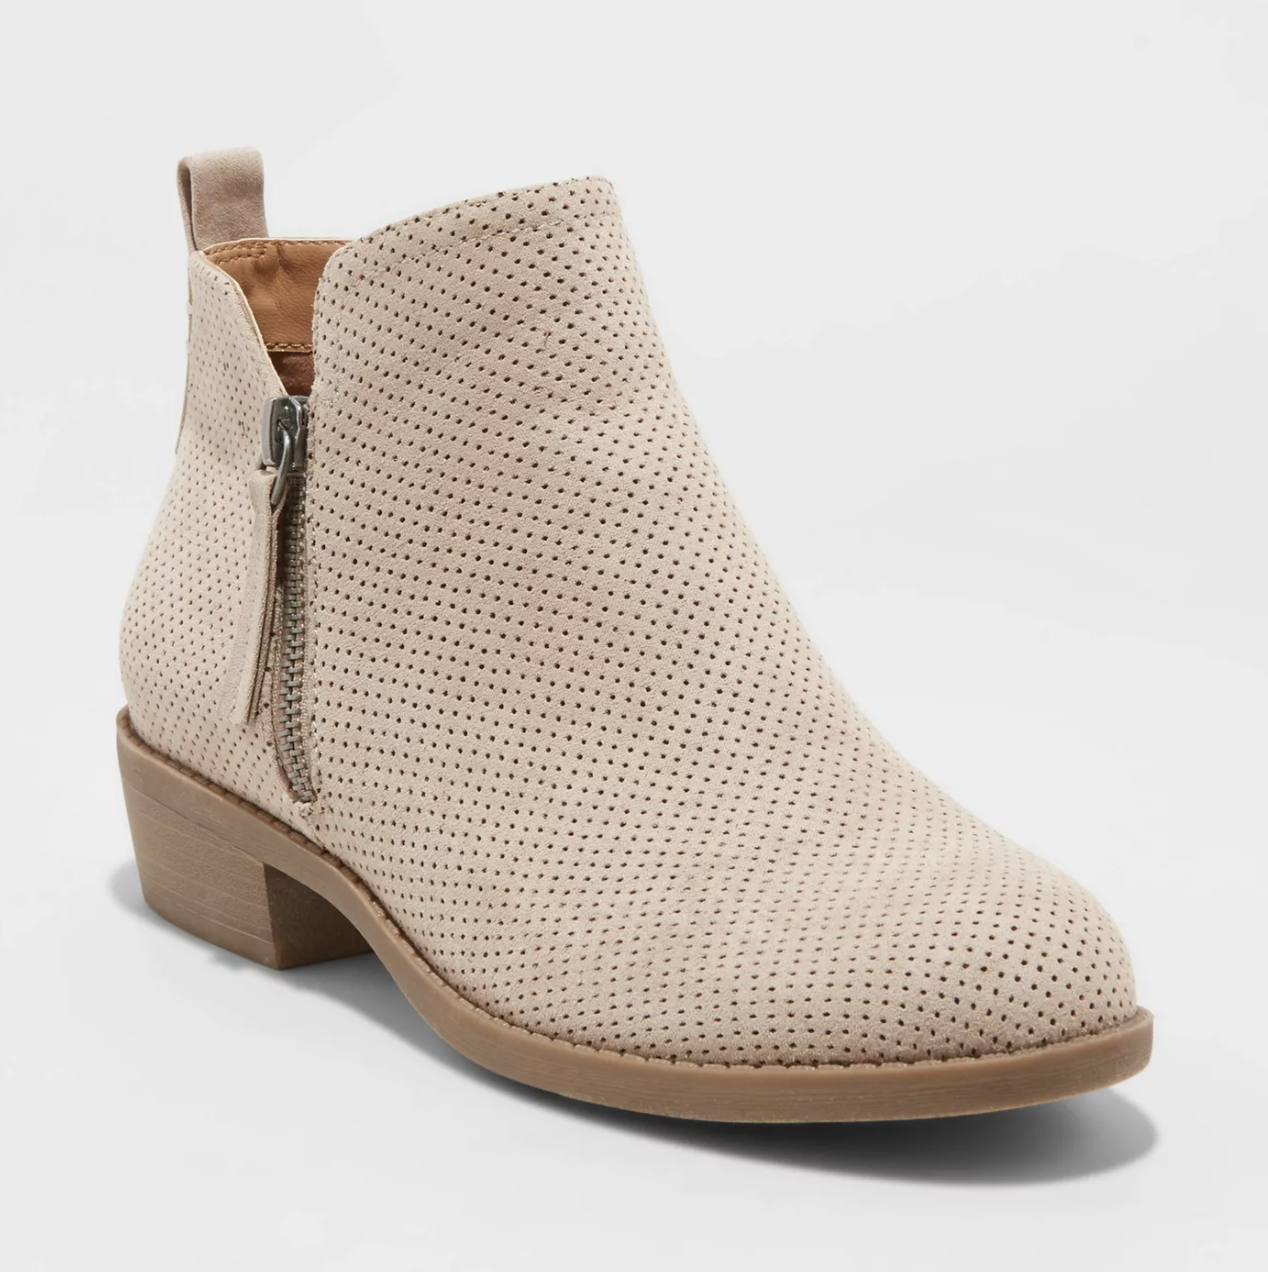 the taupe booties with a silver side zipper